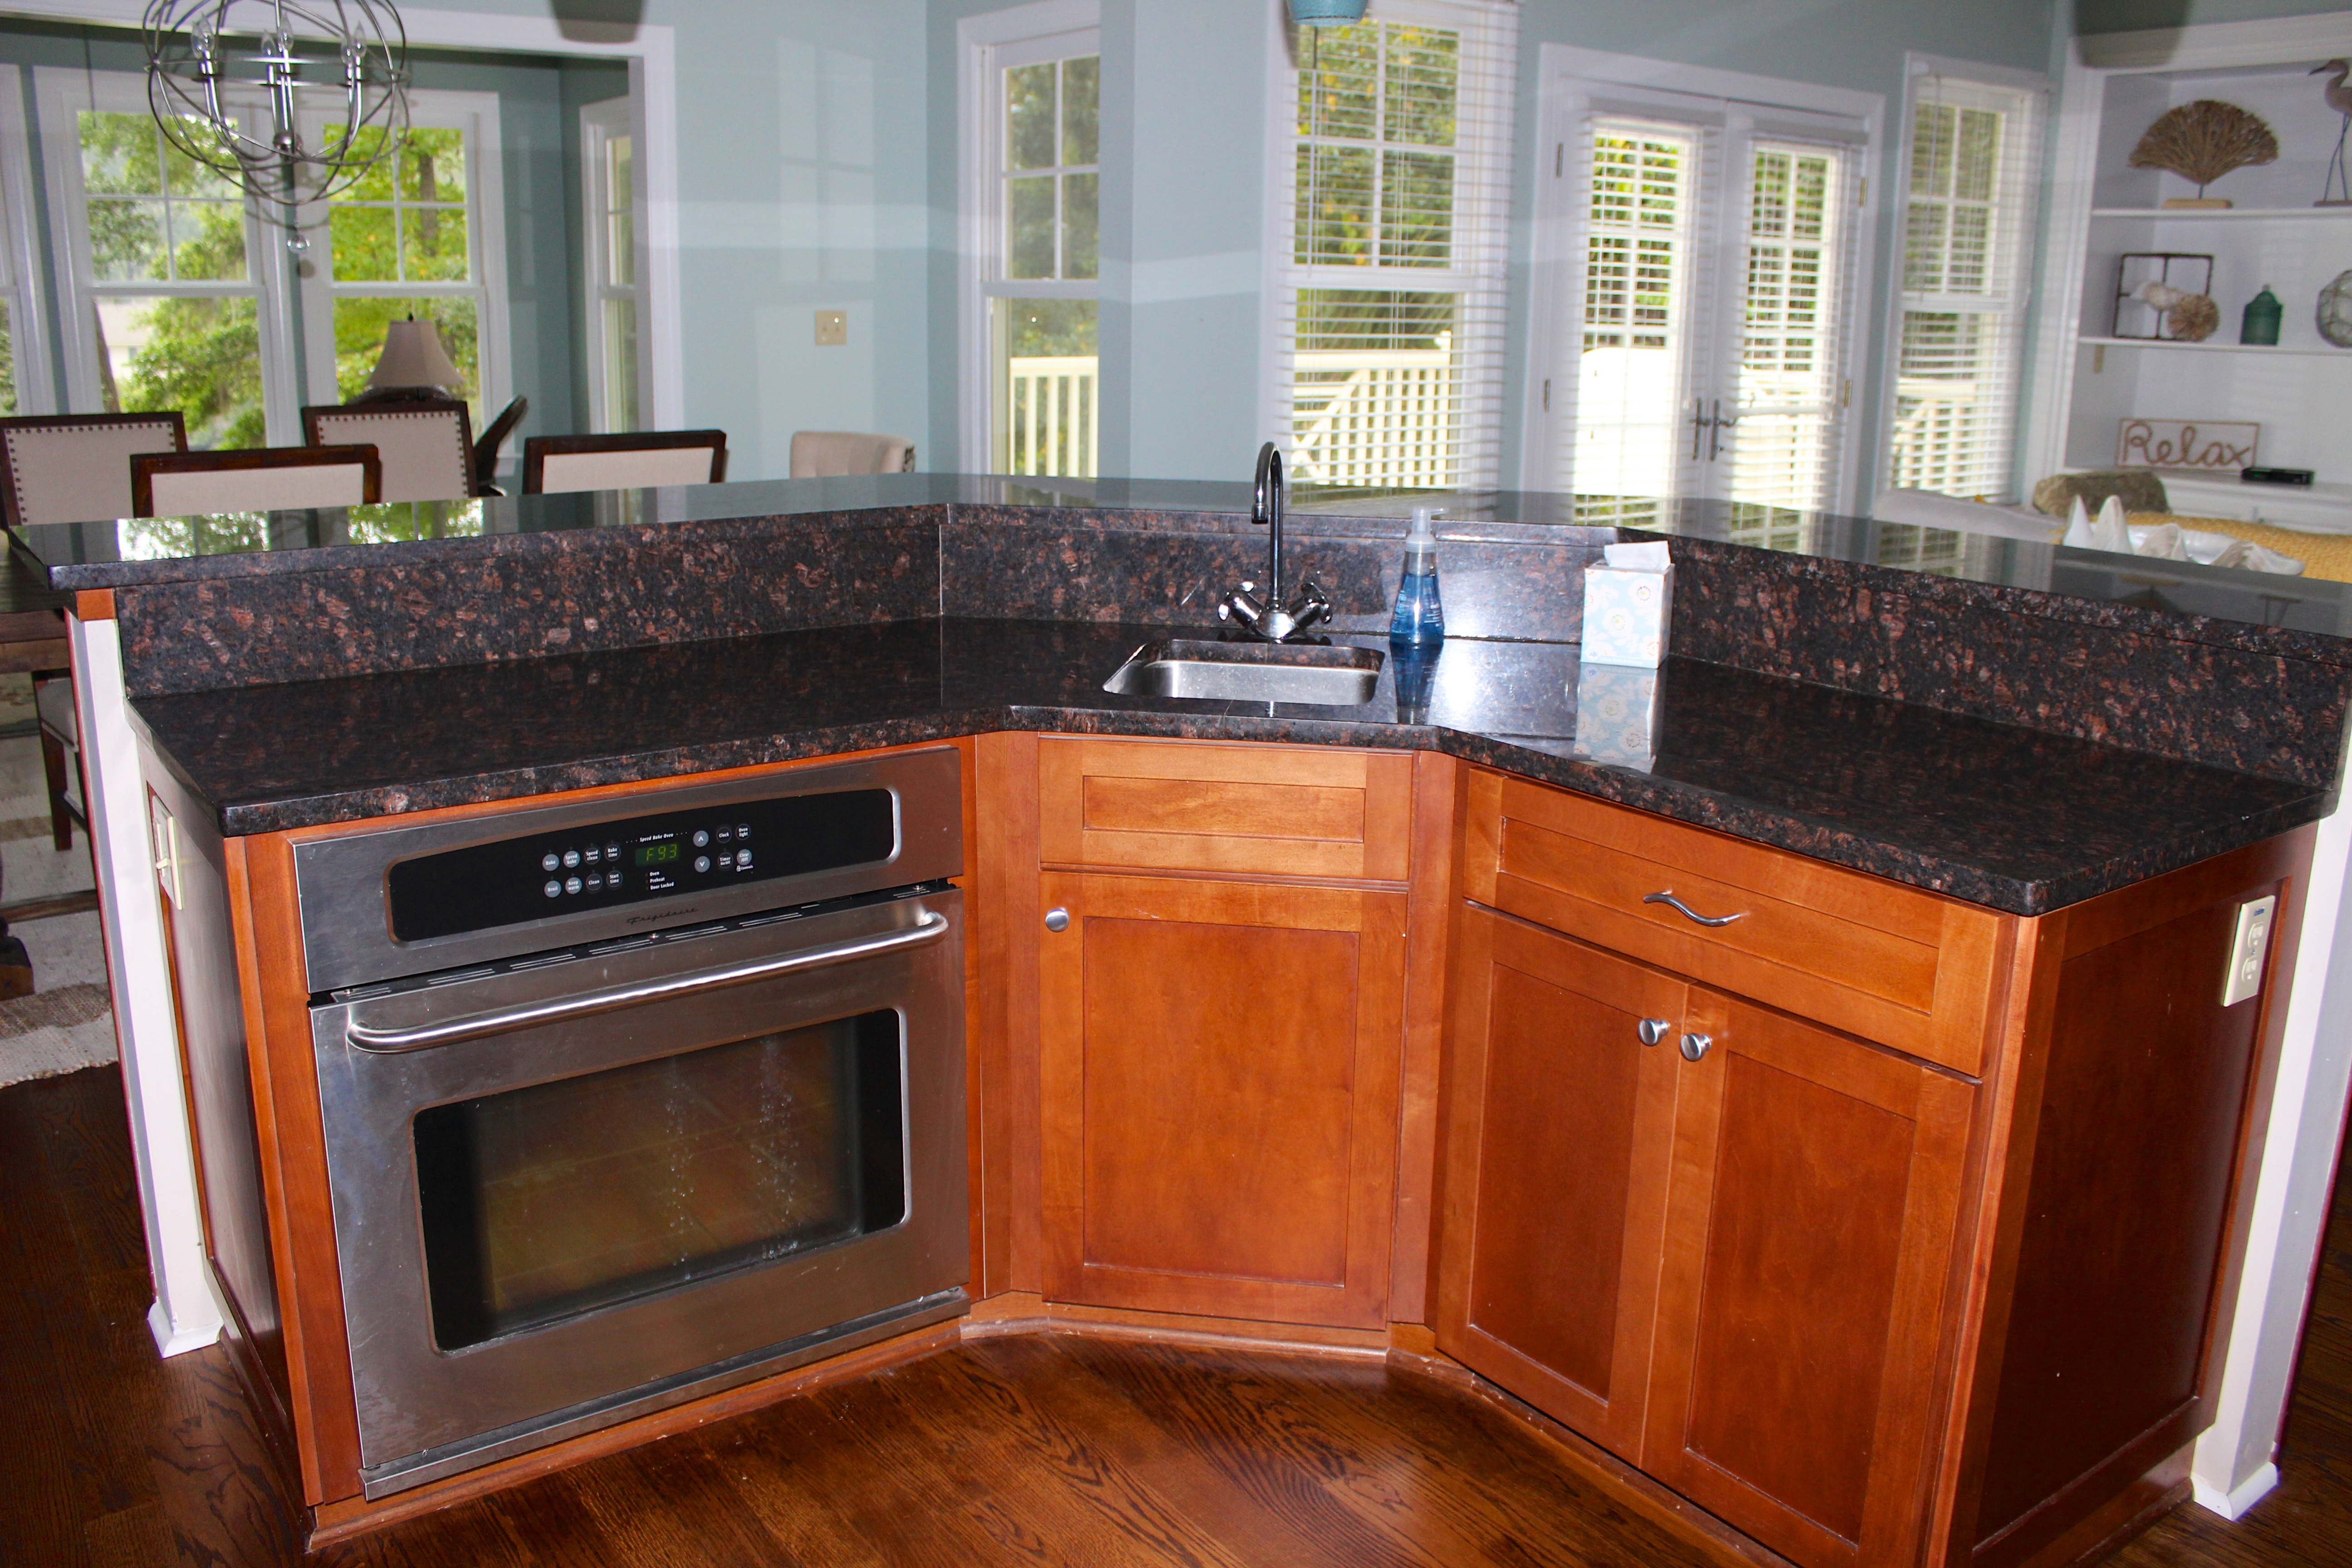 The additional oven makes it easy to cook for a large group.